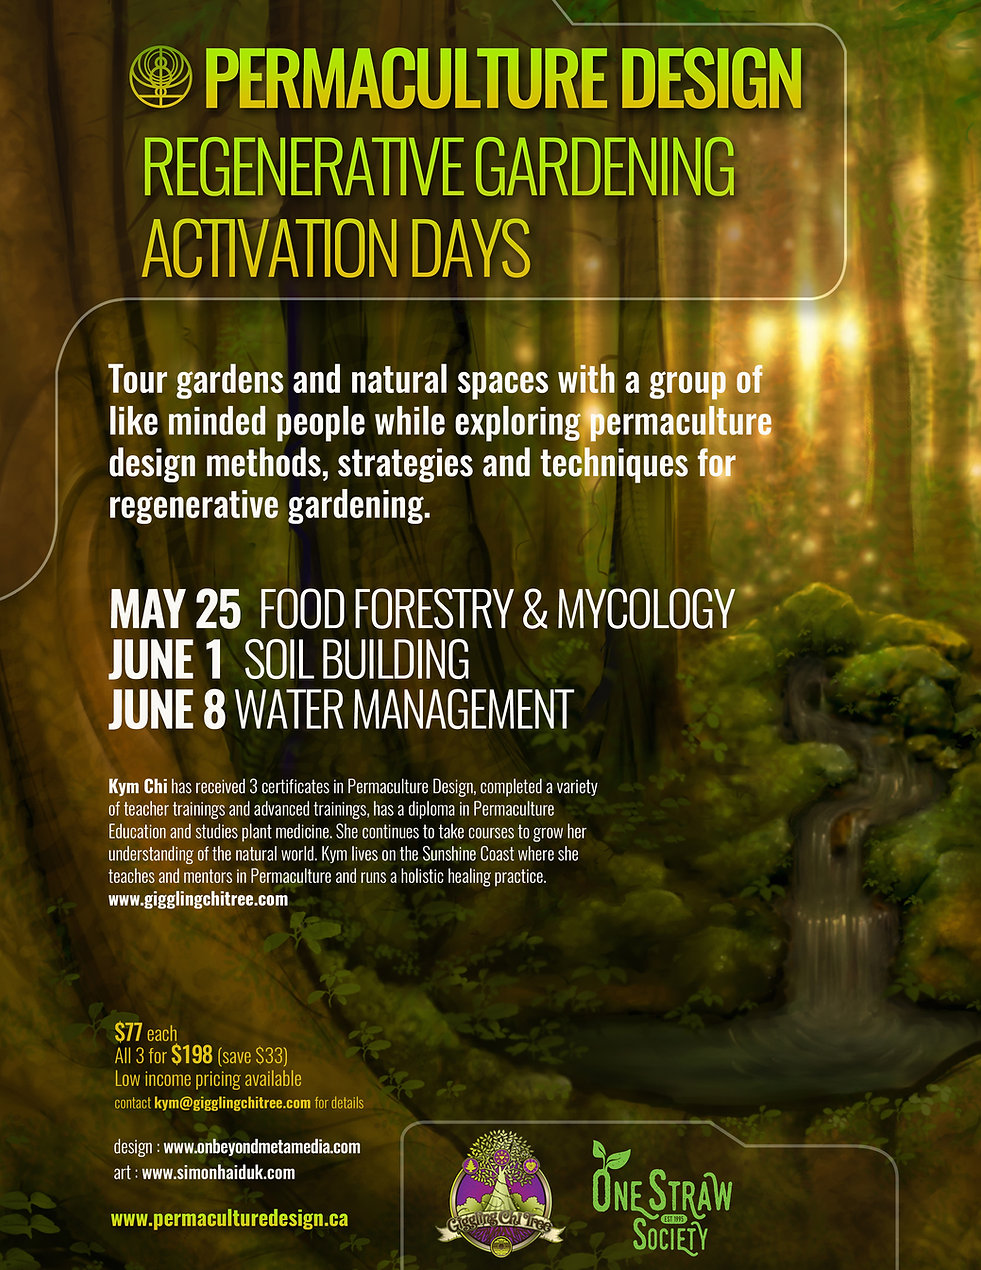 Kym regenerative design days poster.jpg